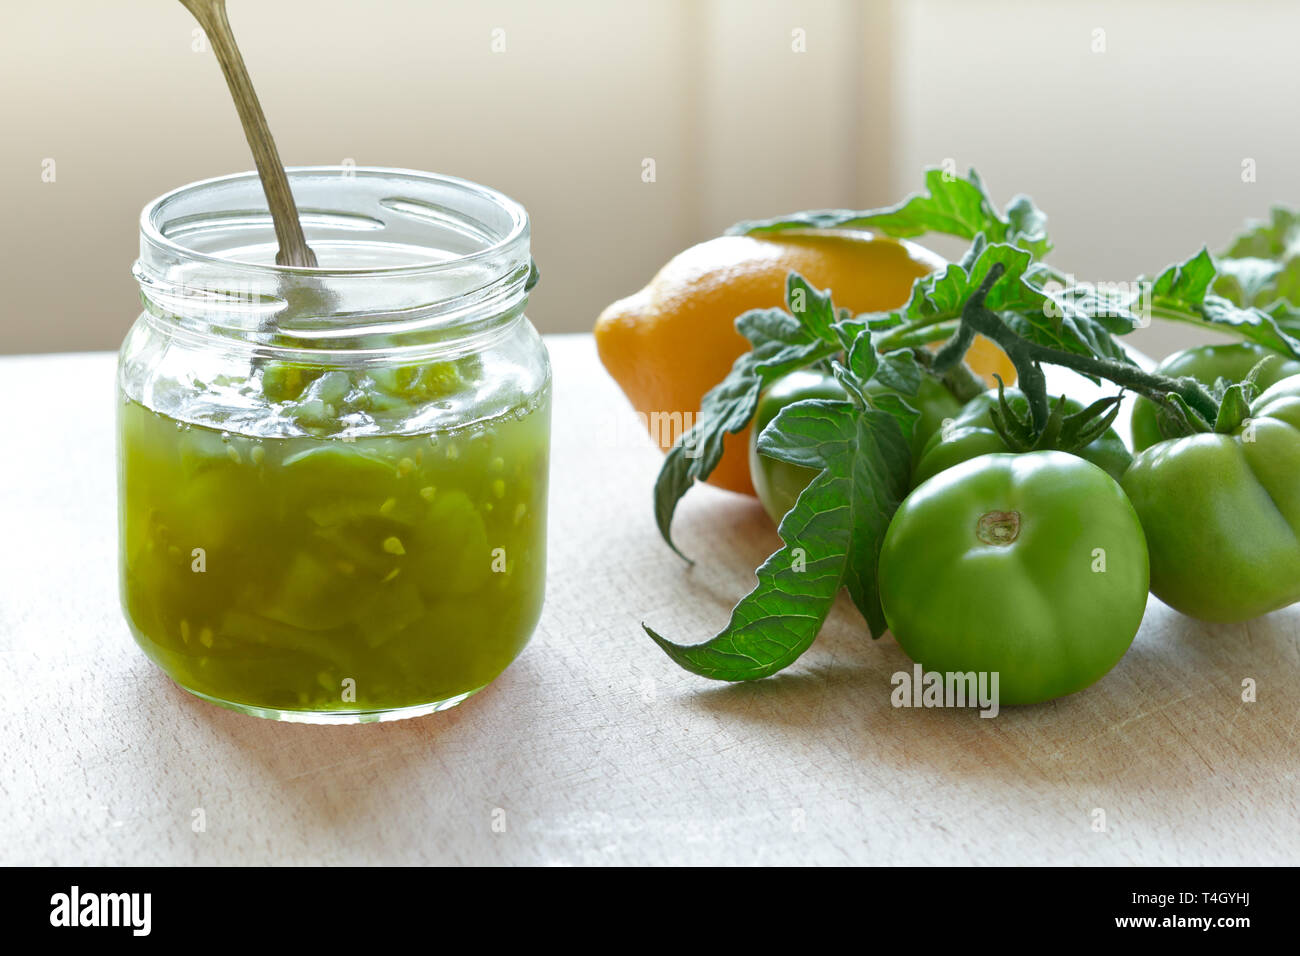 Green tomato jam or chutney in a glass jar with lemon flavoring, home canning concept Stock Photo